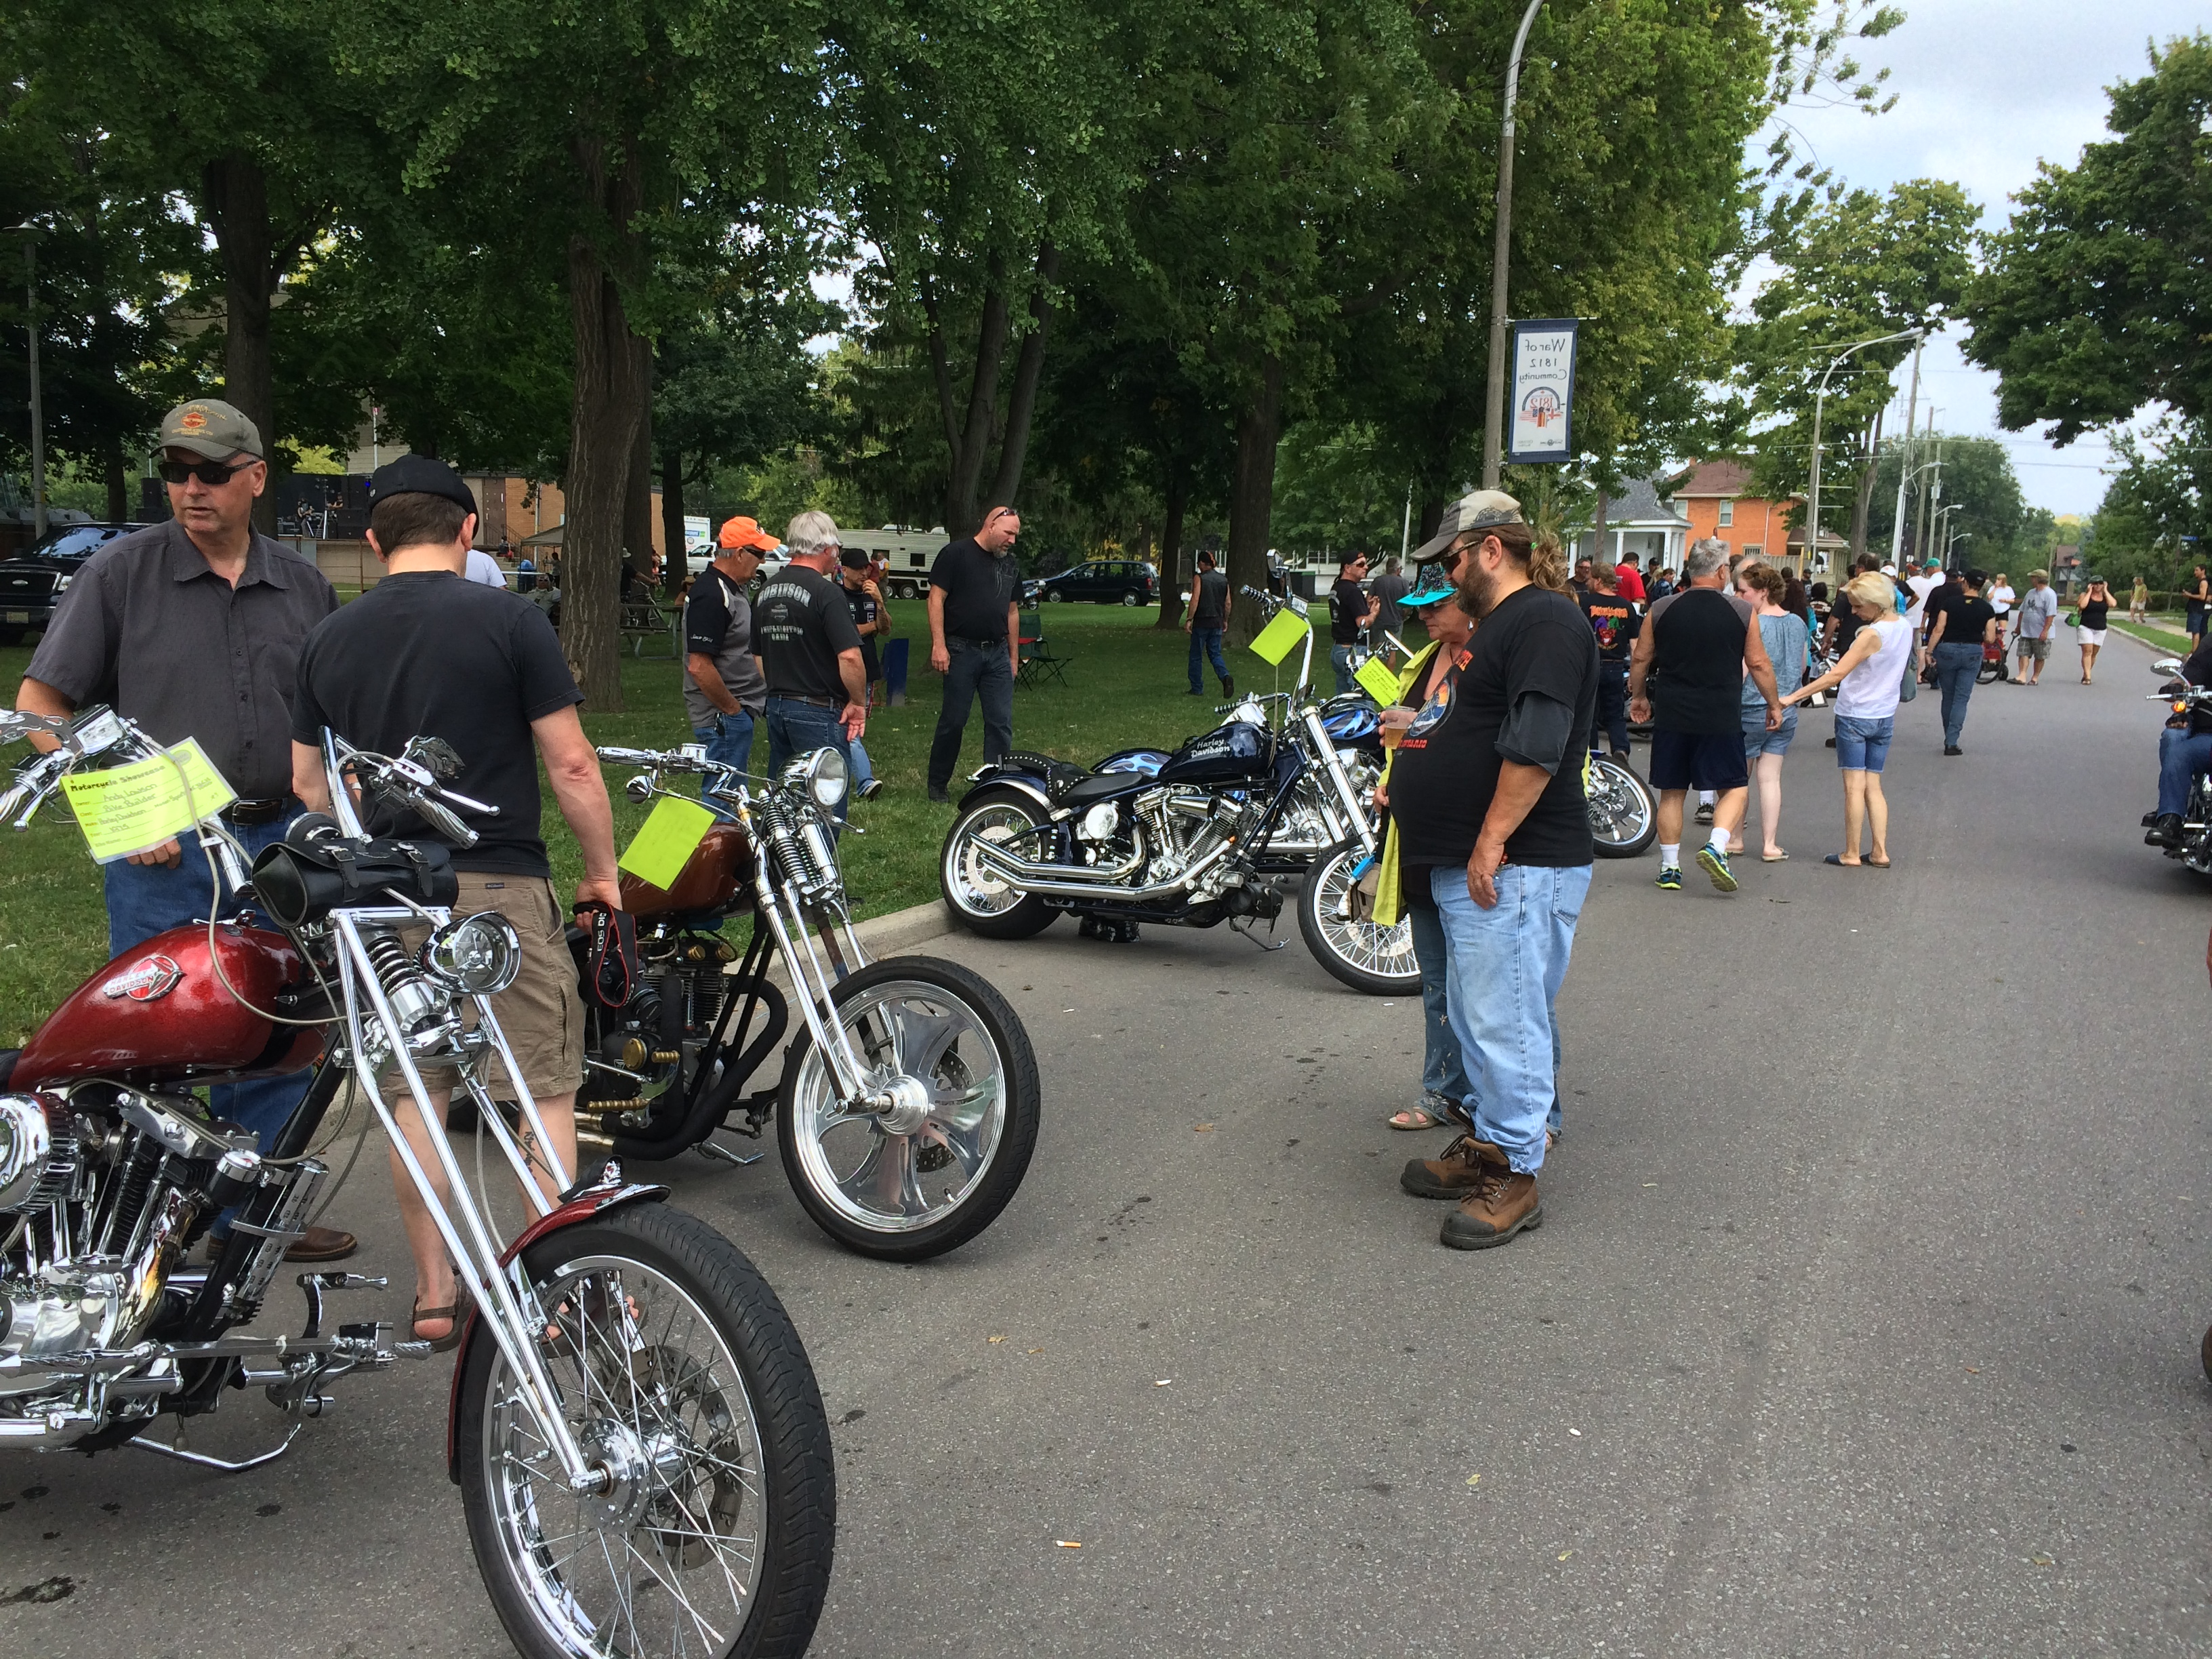 Motorcycles, food and music were all on display at Chatham-Kent's annual BikeFest held at Tecumseh Park in downtown Chatham on August 23, 2014. (Photo by Ricardo Veneza)